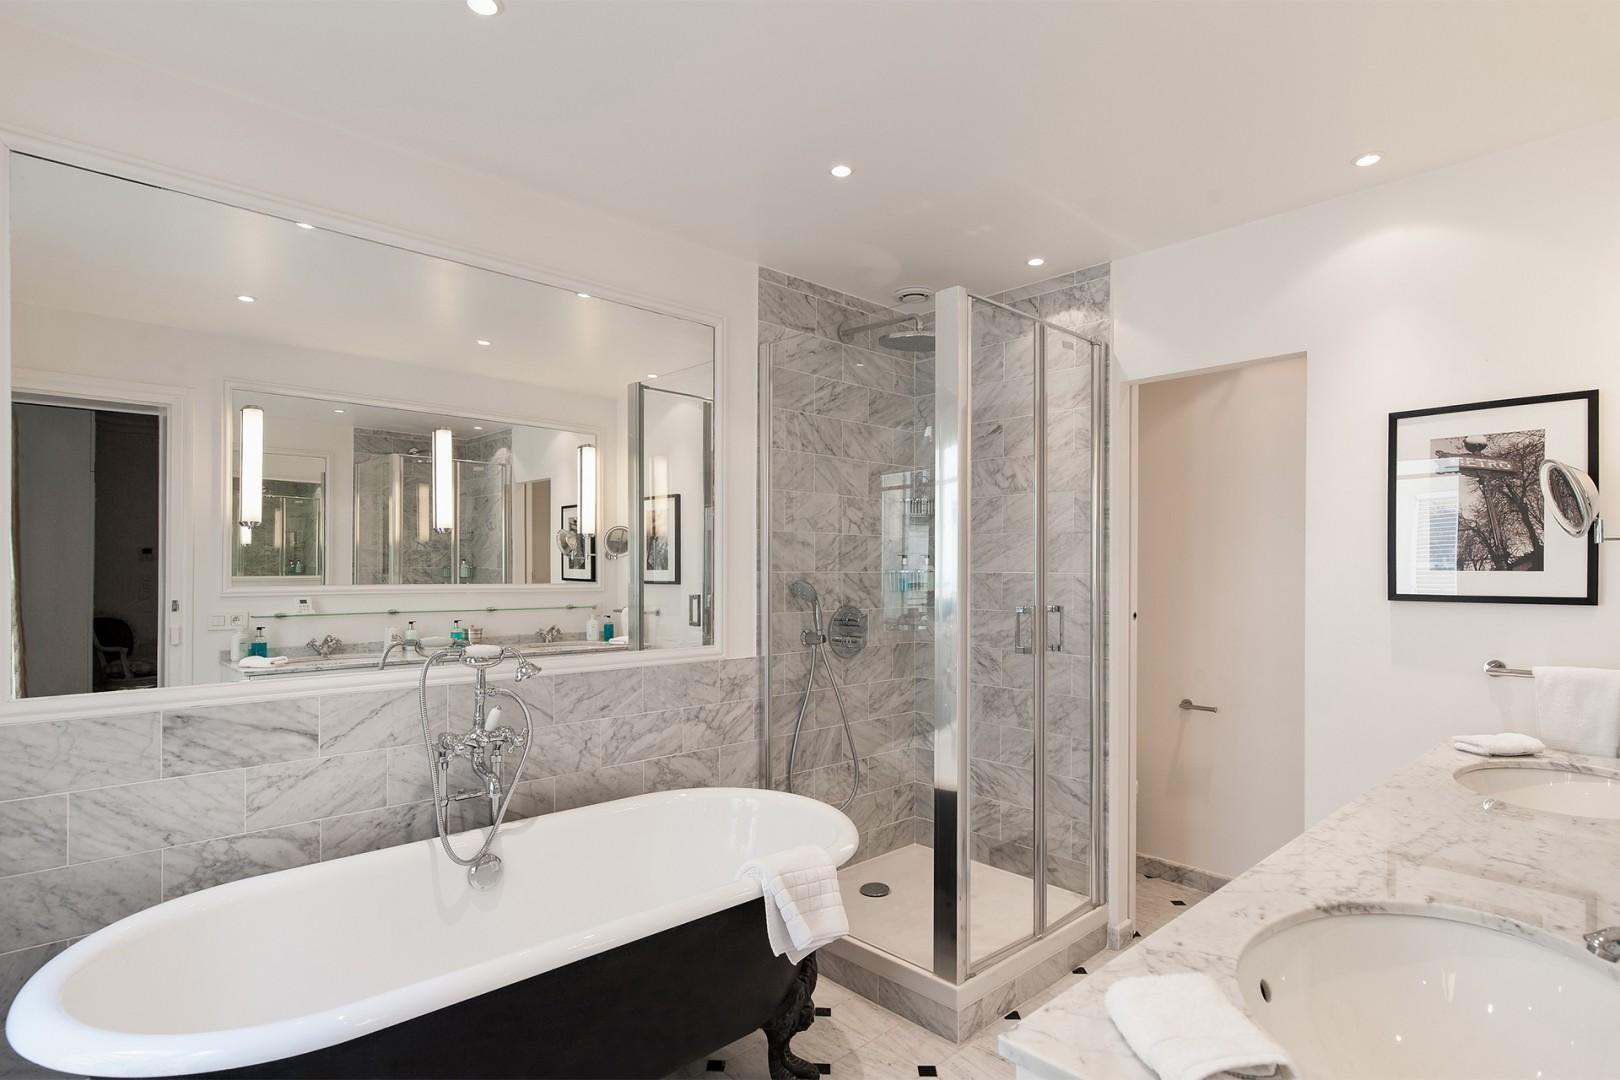 The en suite bathroom 1 is a glistening setting of gray marble.